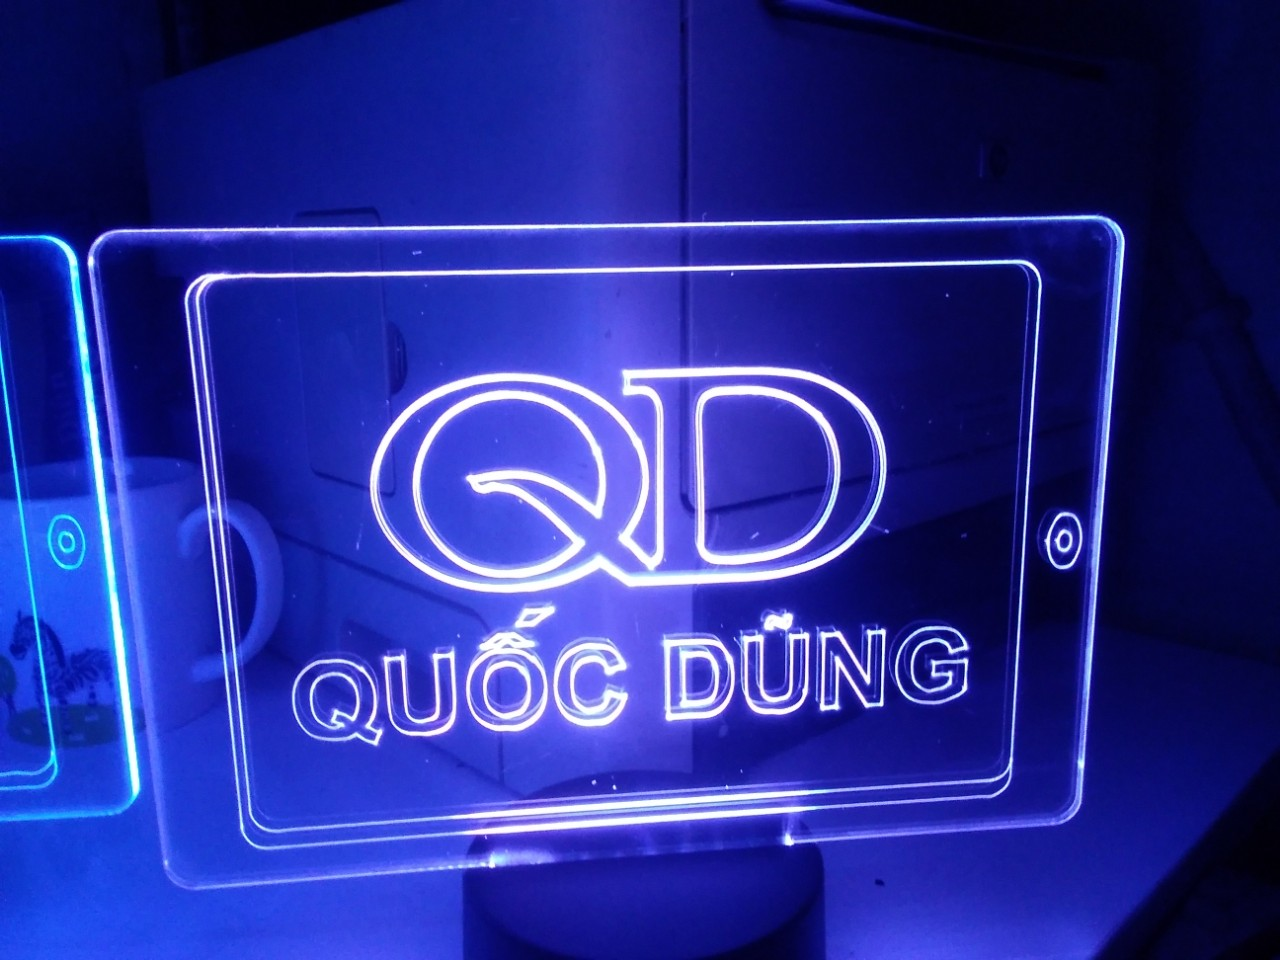 led quoc dung